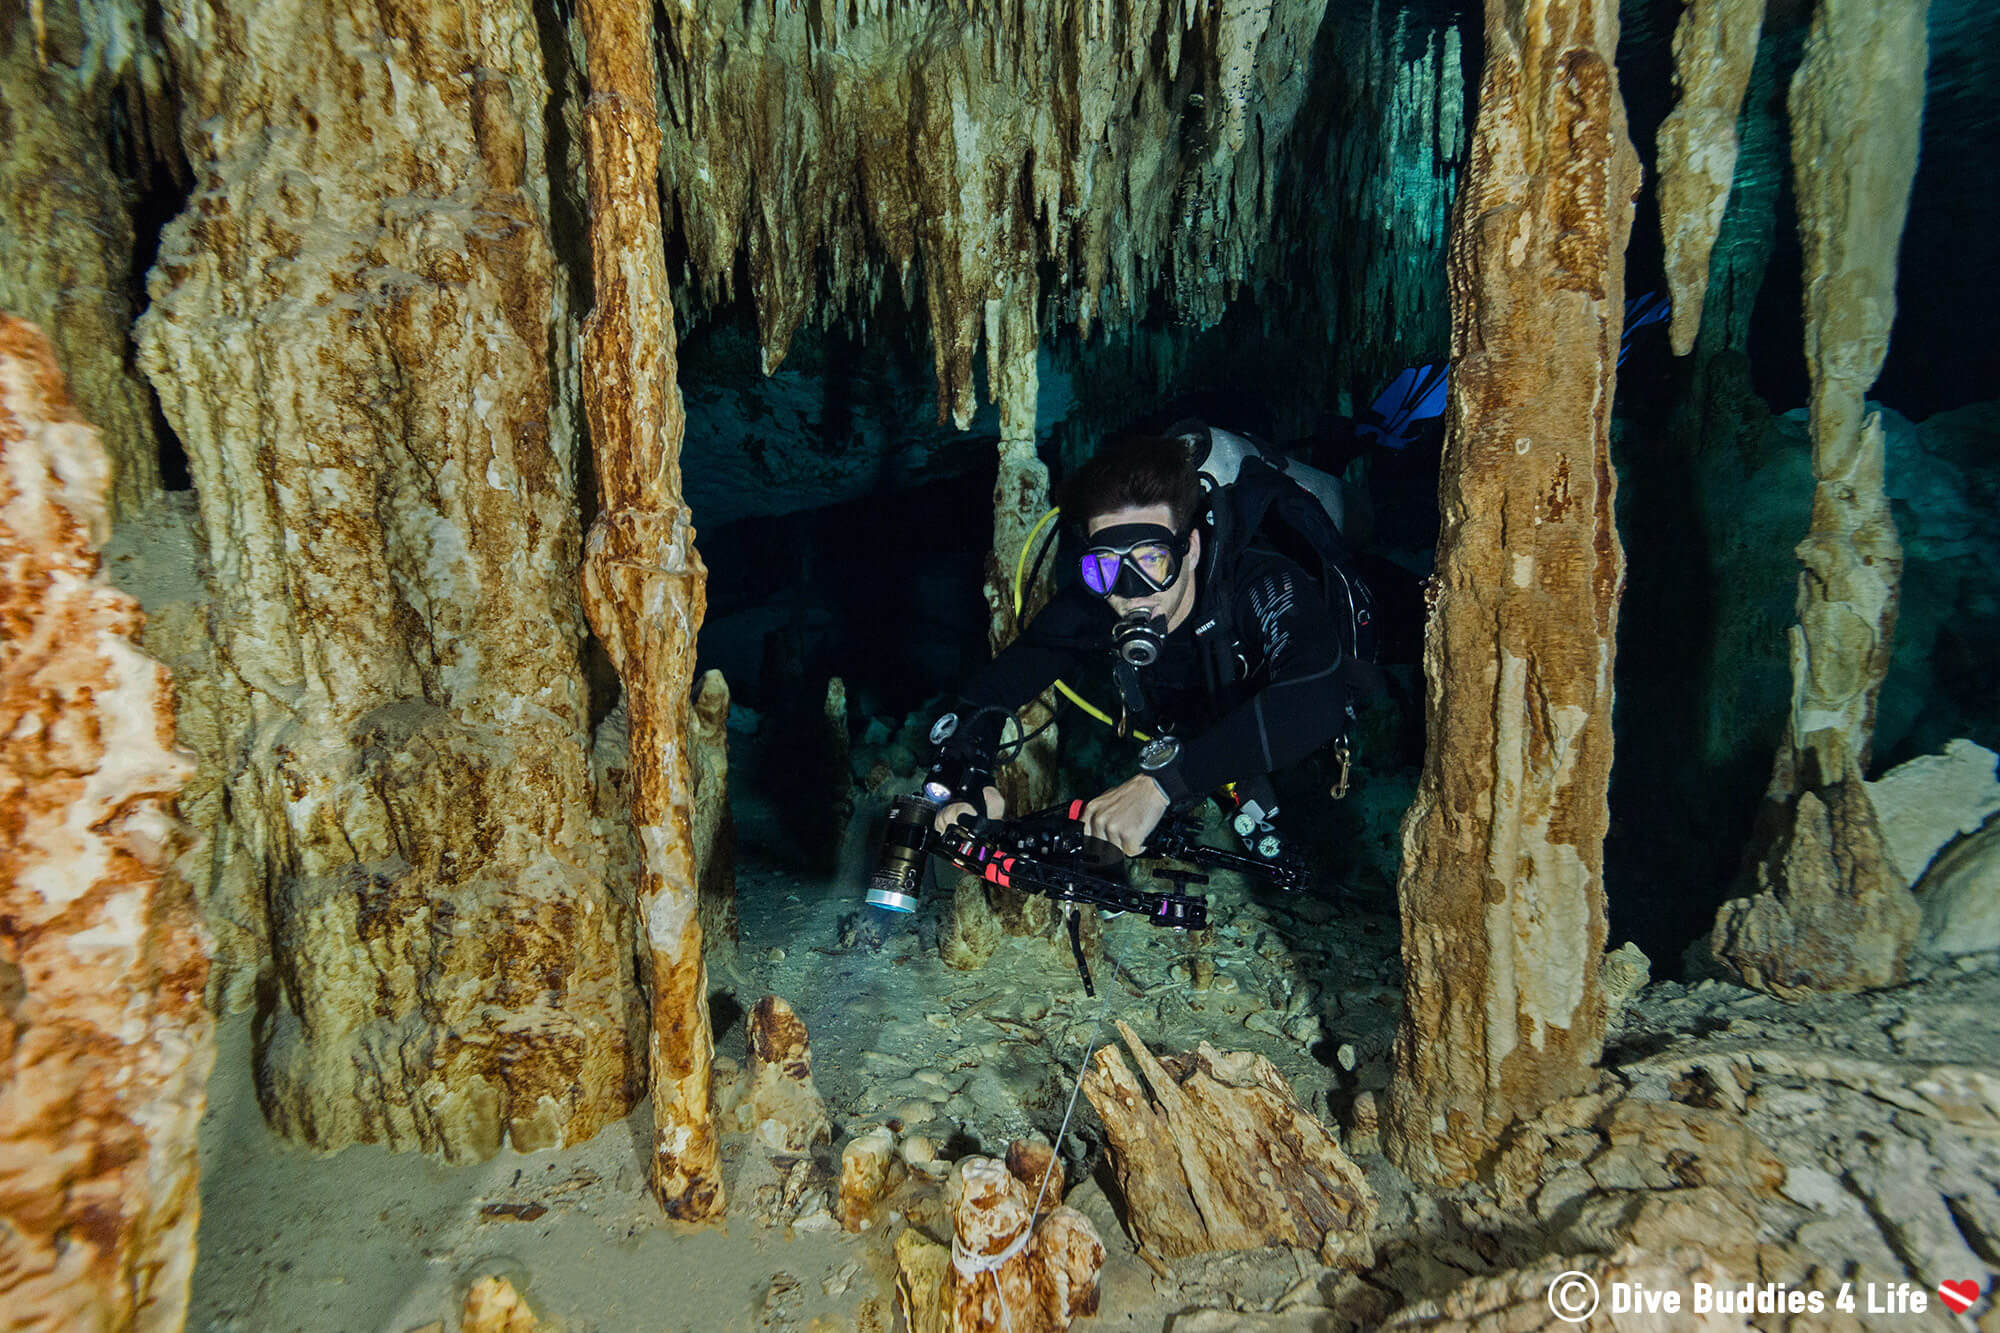 Joey Scuba Diving Through Some Pillars Of Stalagmites And Stalactites In Tulum, Mexico